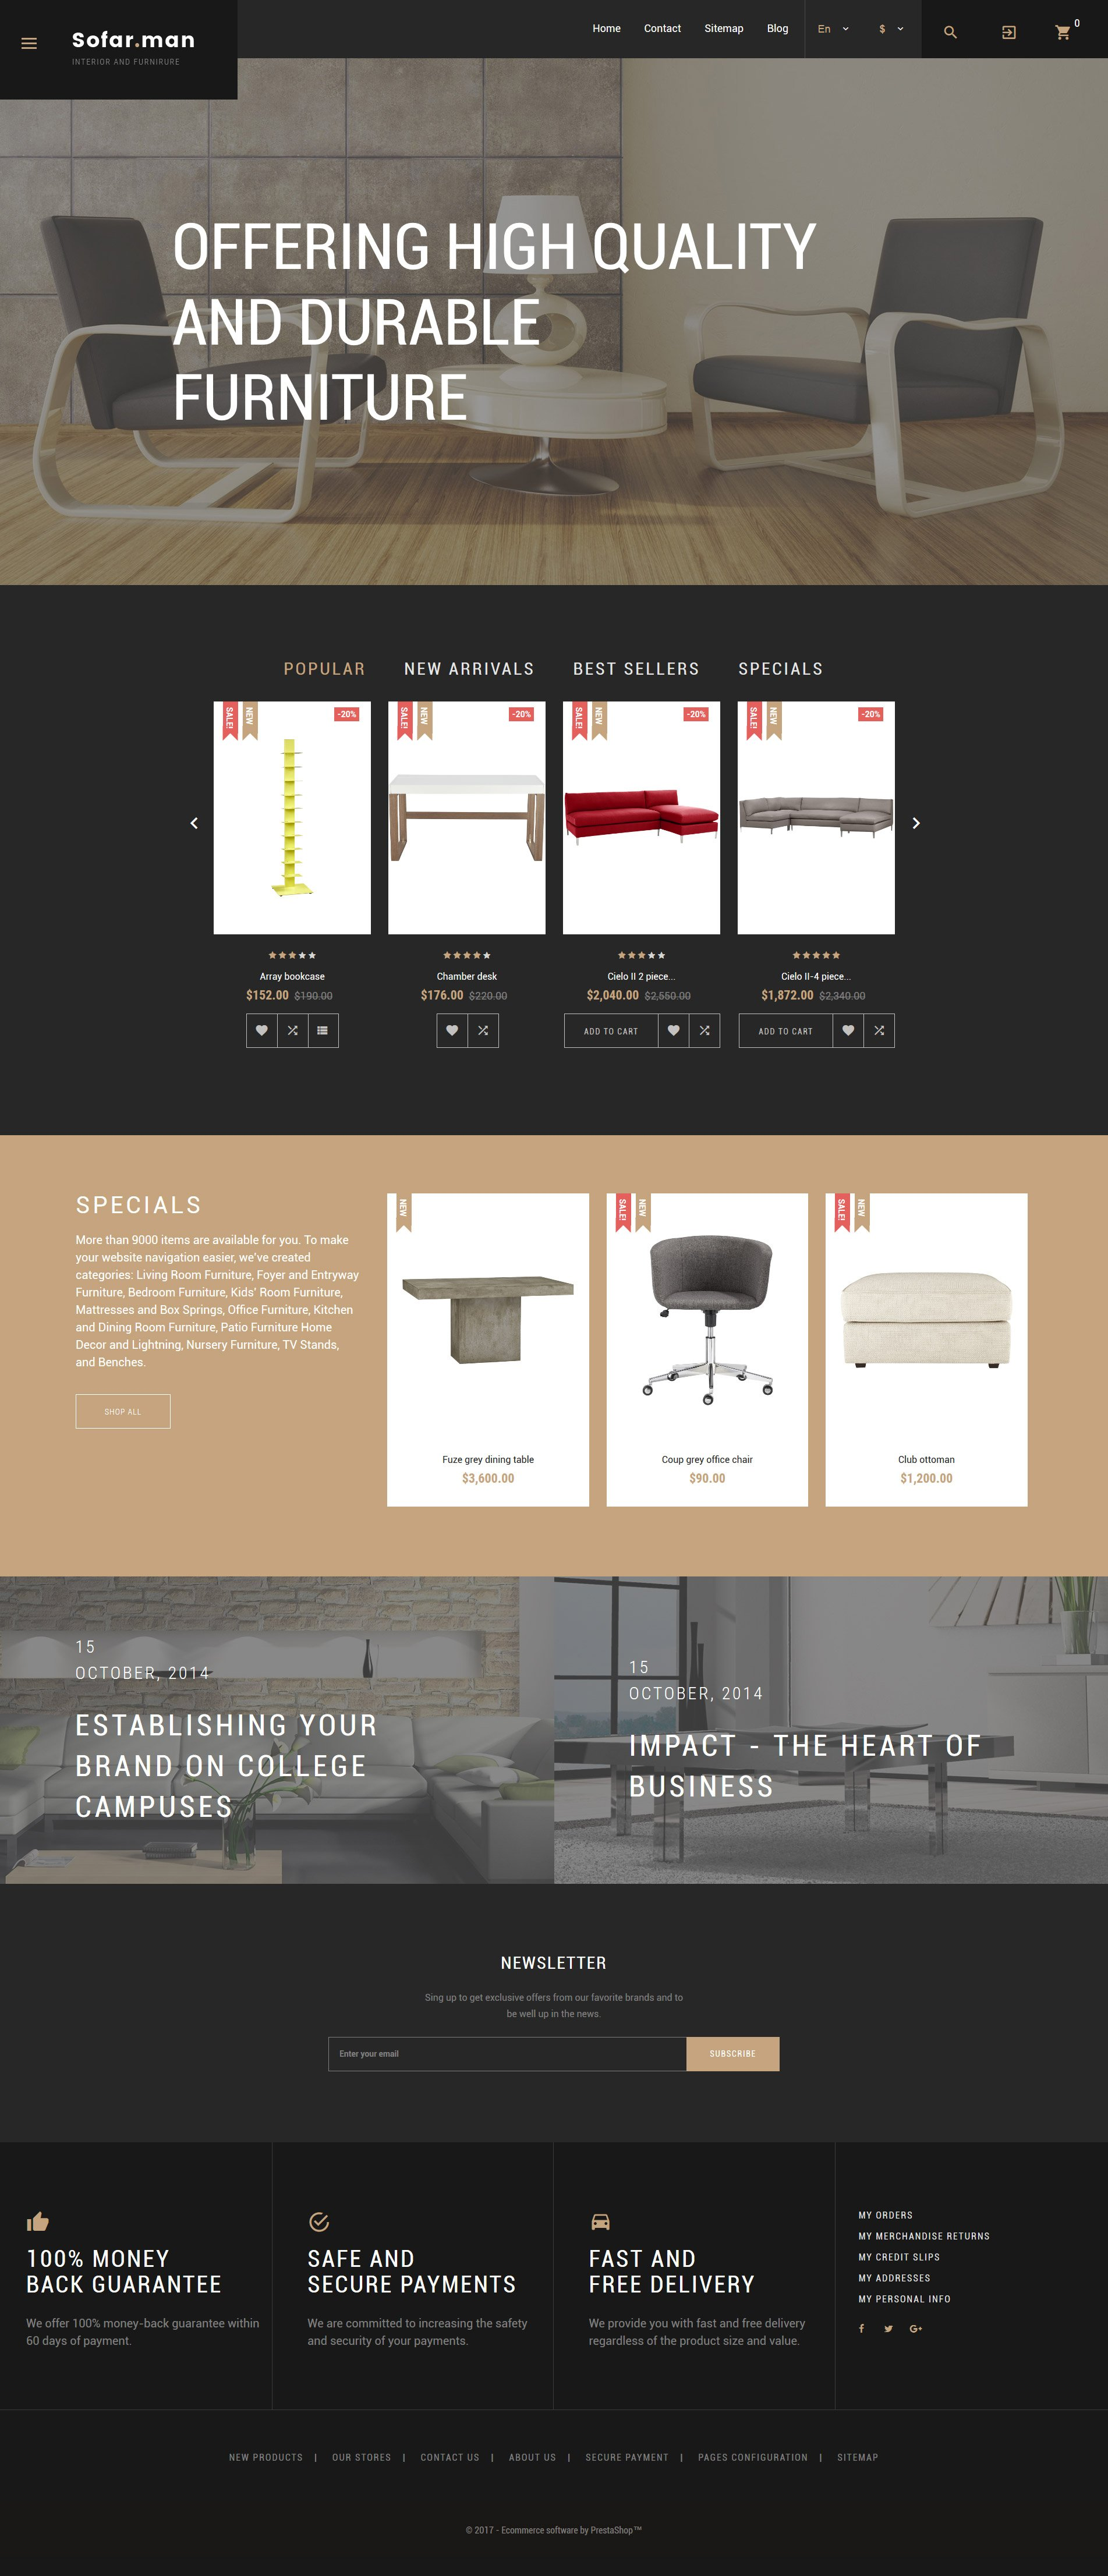 Website Design Template 62223 - furniture profile company designers work team portfolio creative ideas exterior lamp catalogue order clients customers support services delivery decoration style awards collection product advices tools